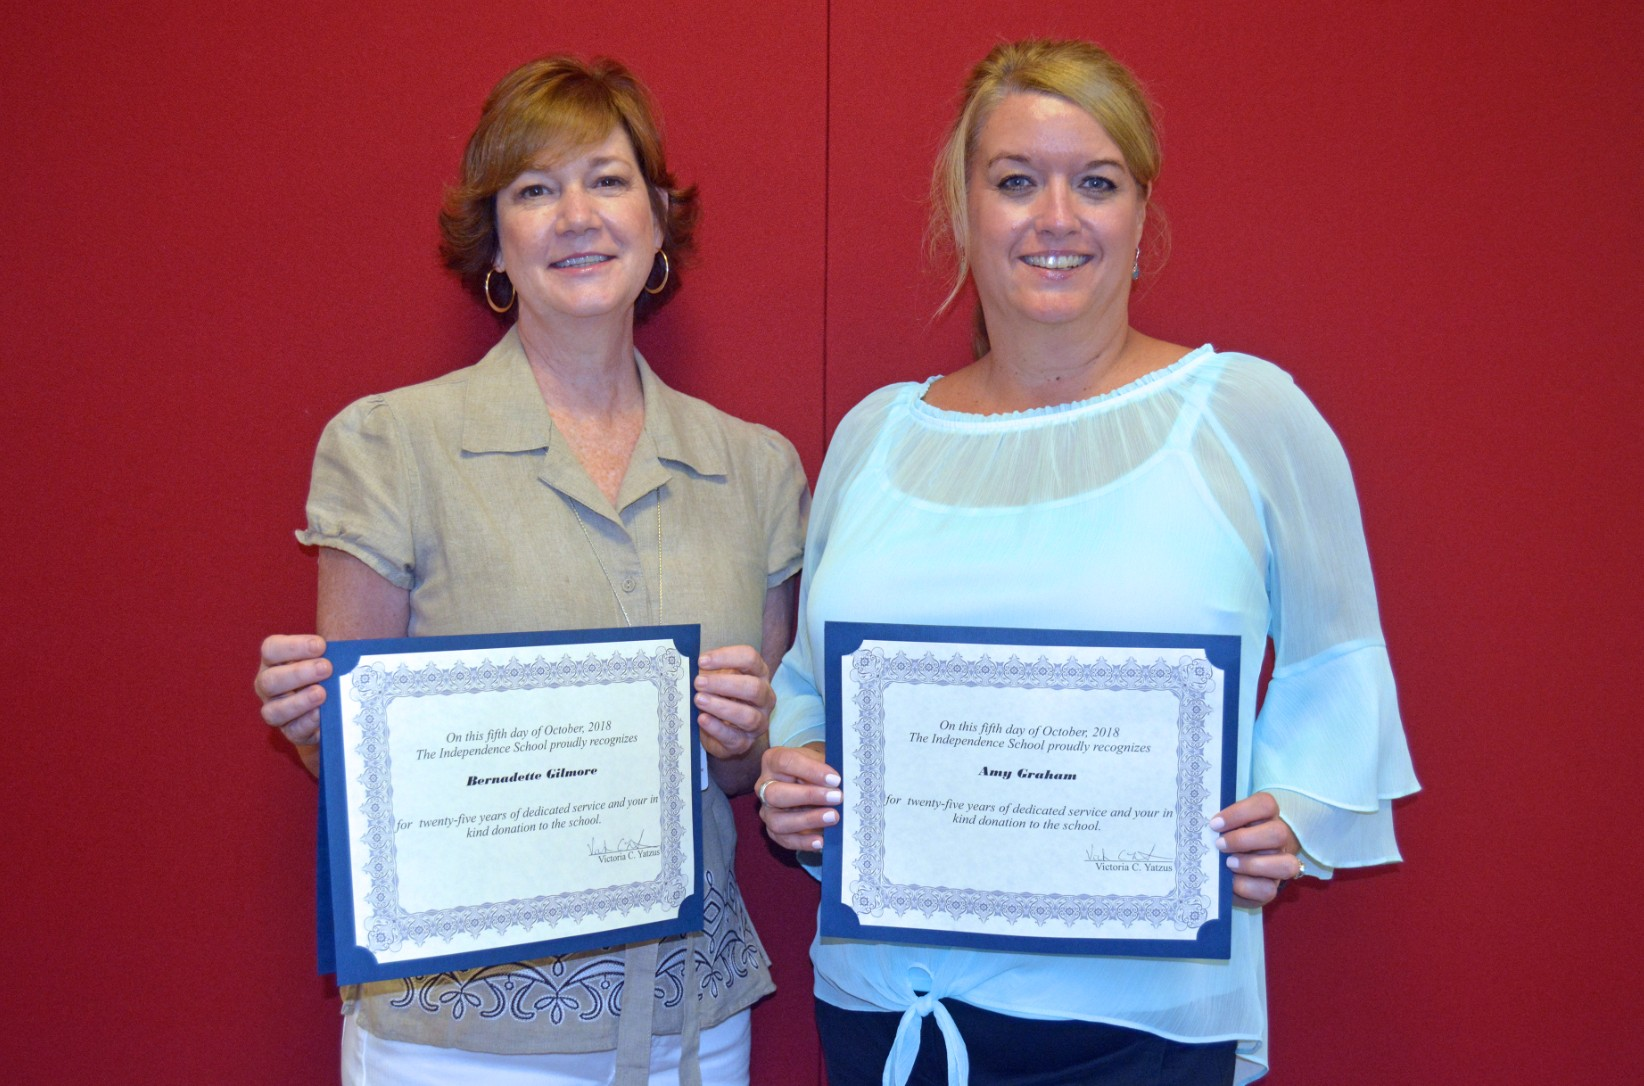 Independence honors service milestones; Bernadette Gilmore, Amy Graham reach 25 years